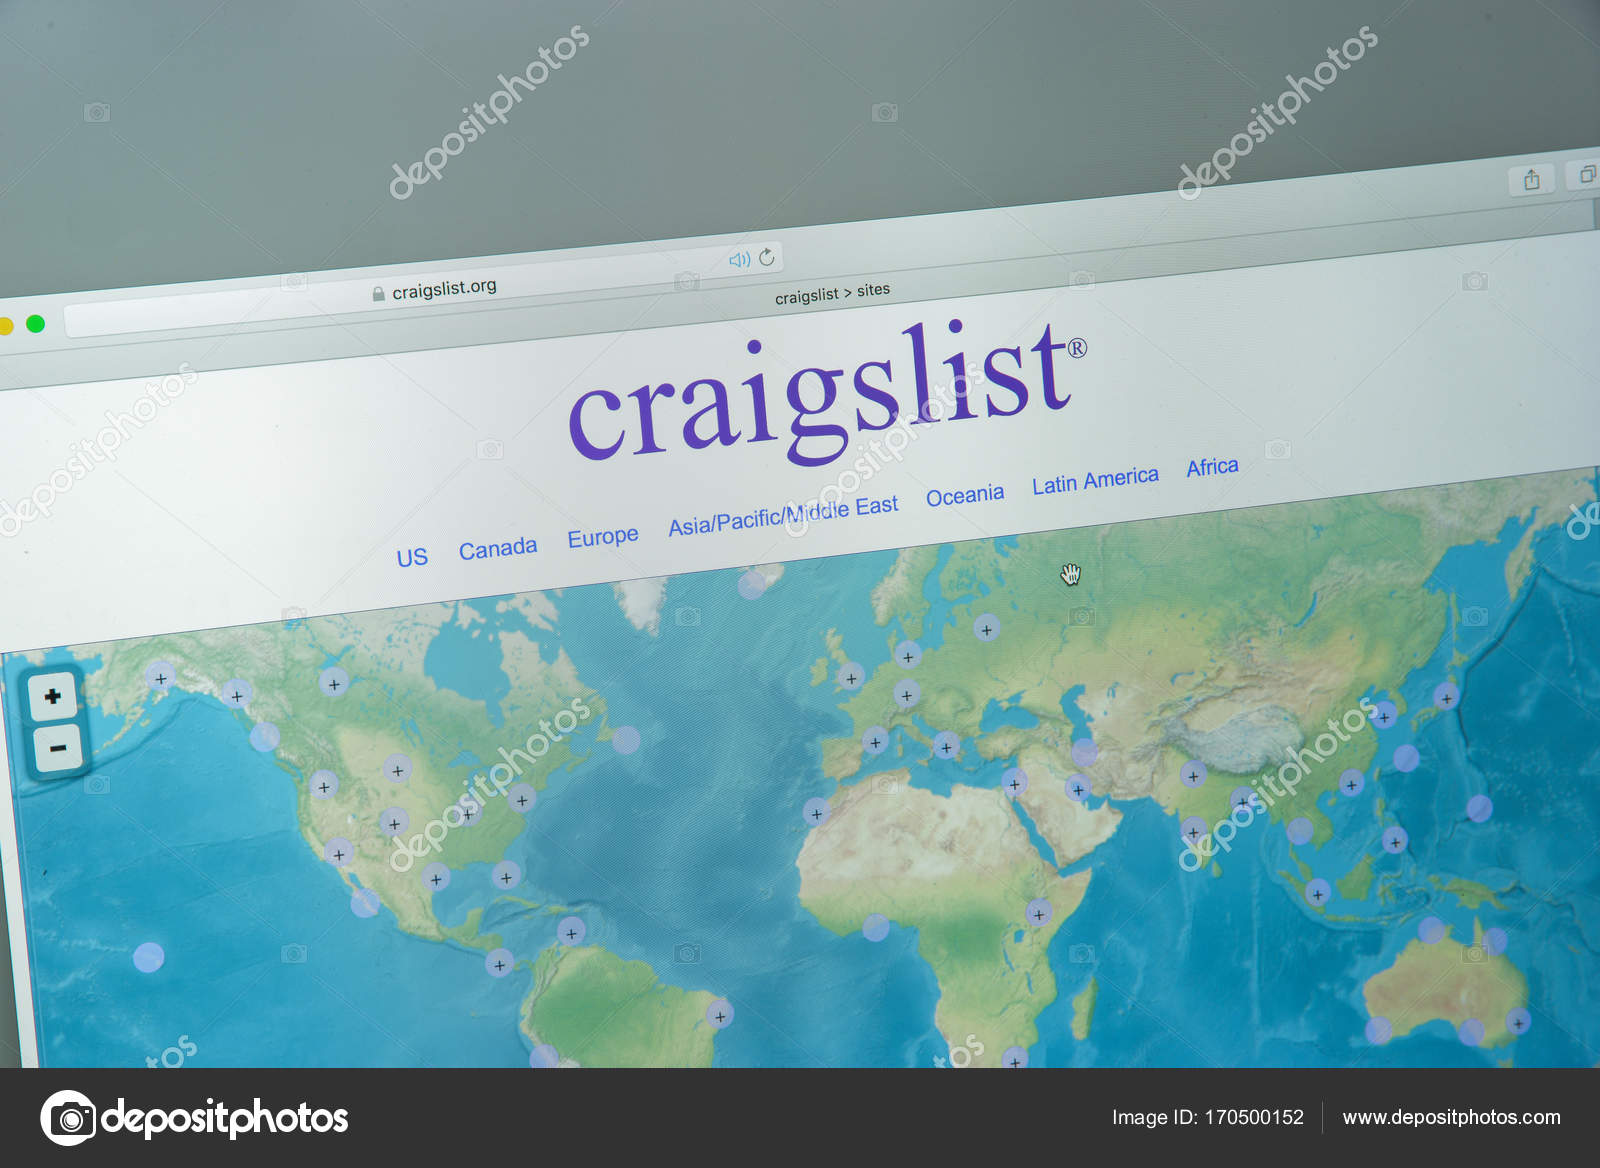 Dating kontakt annonser som Craigslist